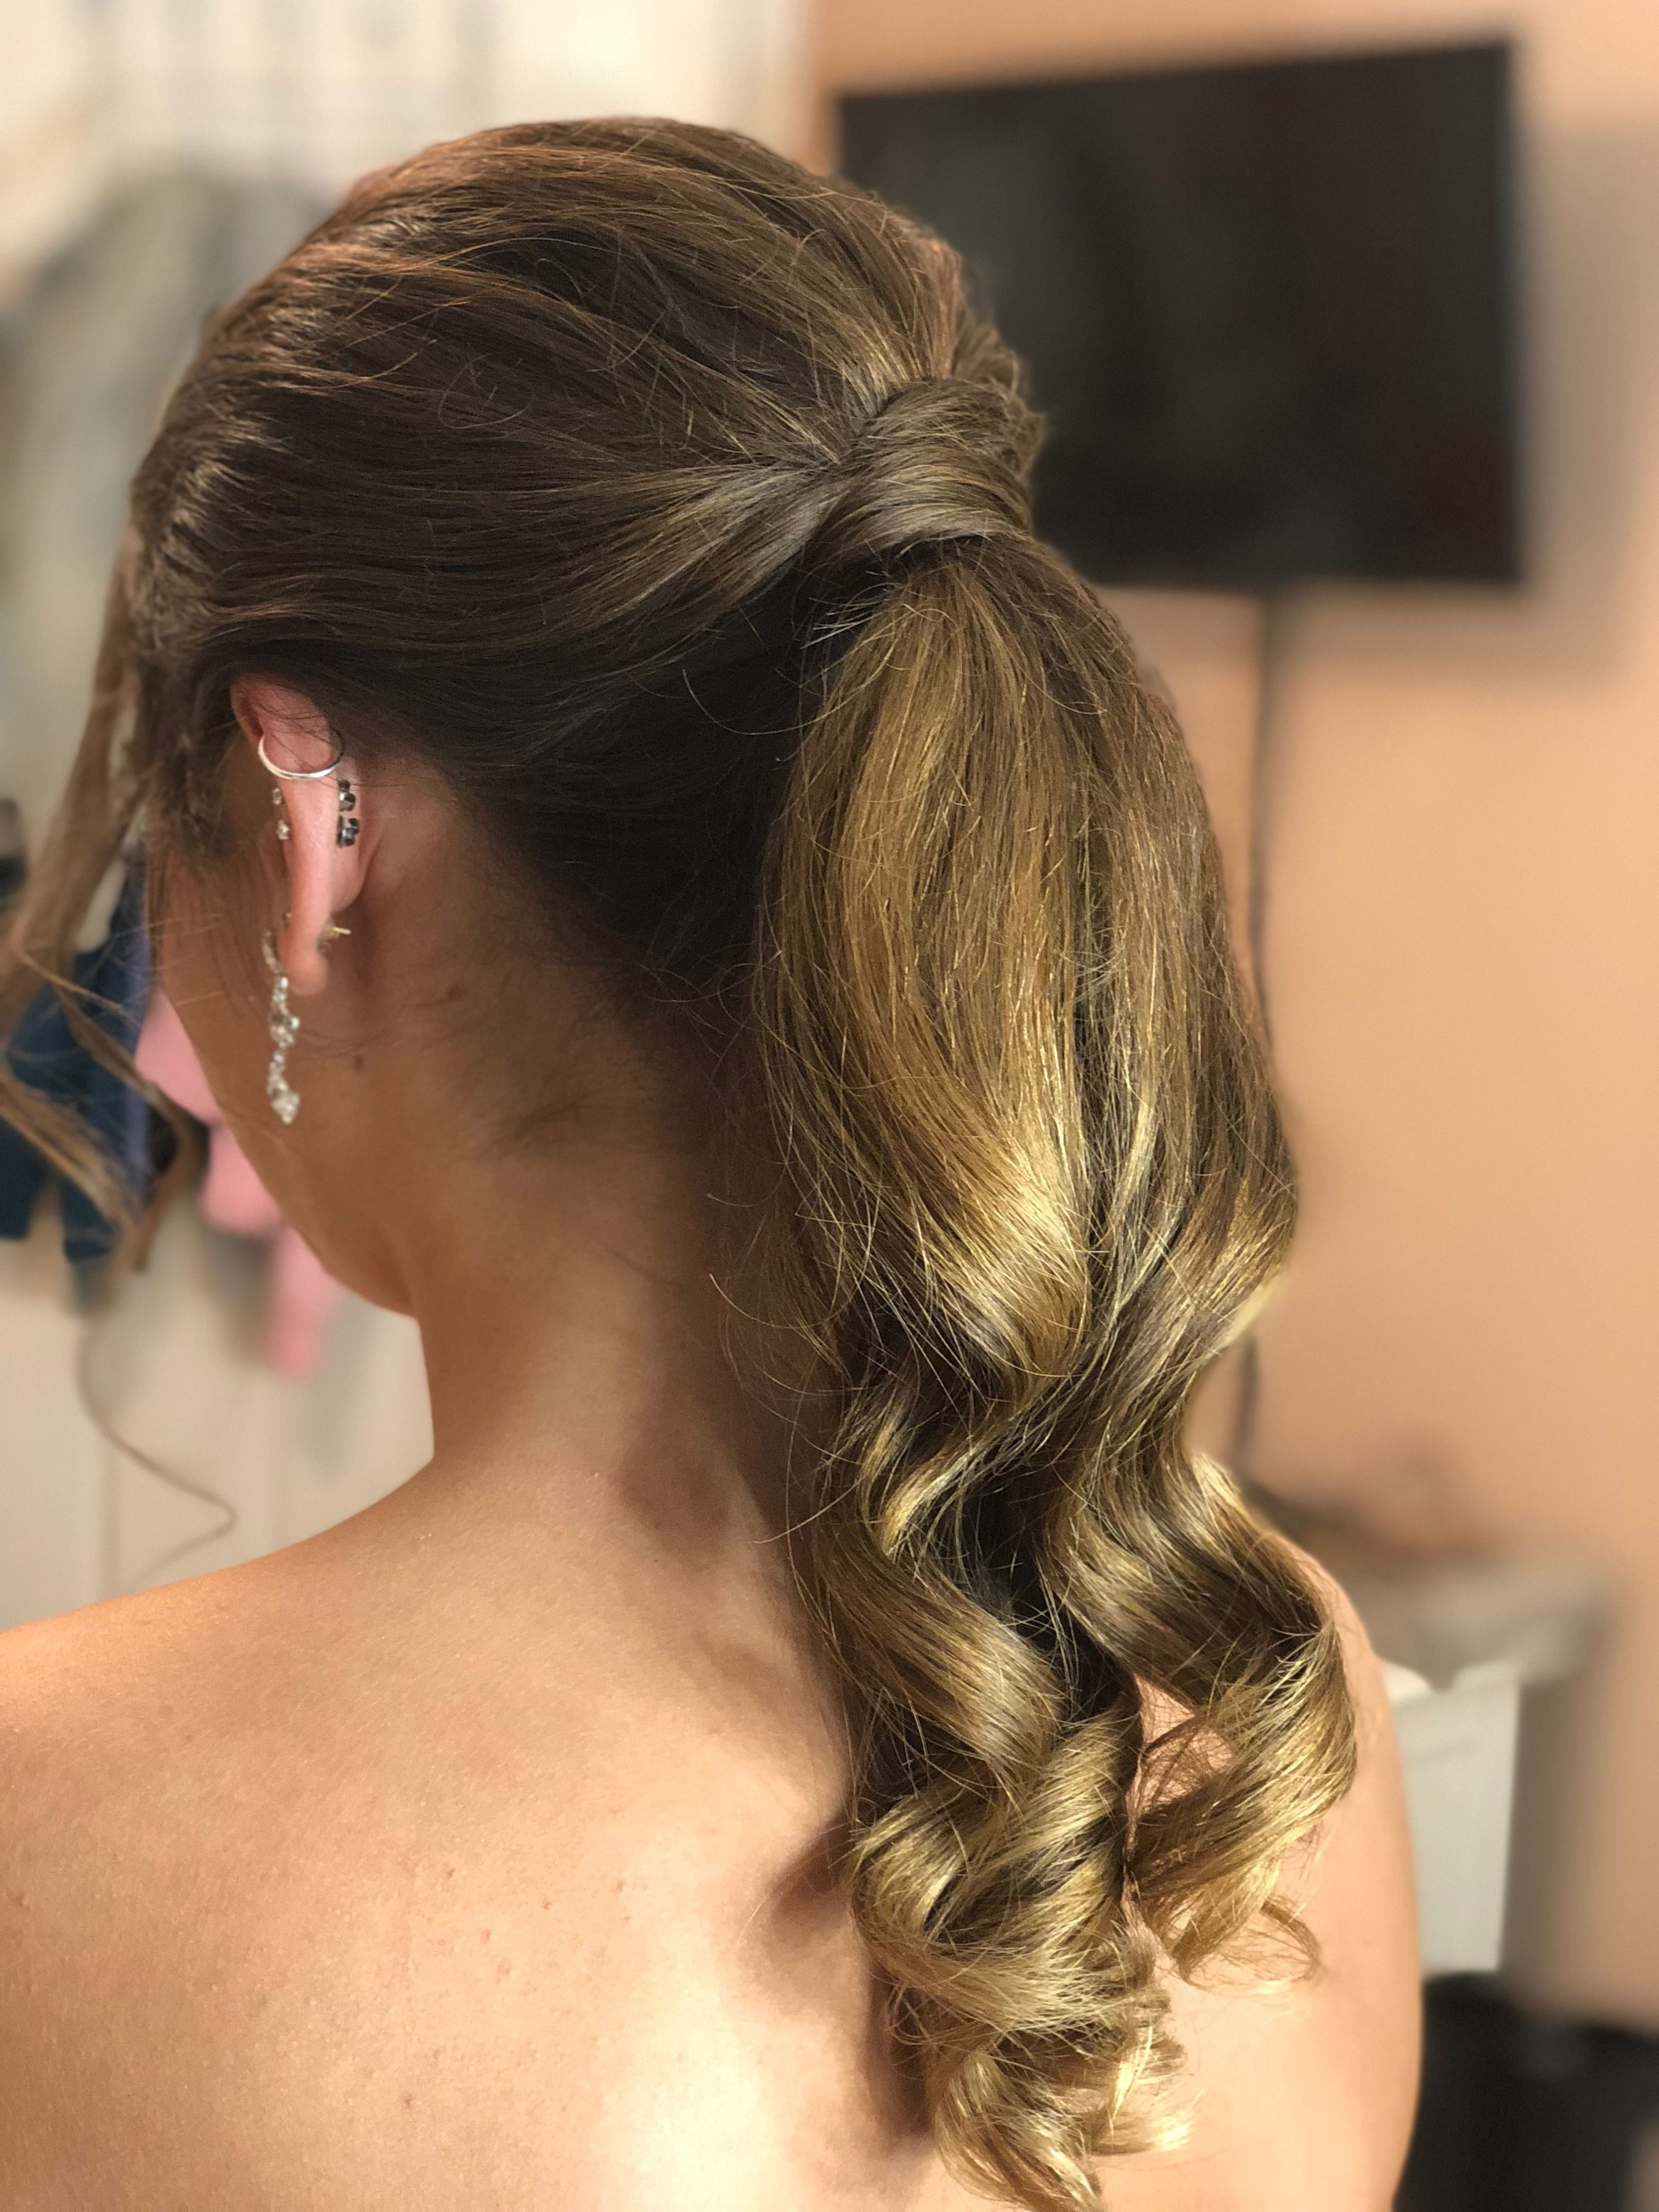 prom ponytail hairstyle | bella rococo at emilia's | prom